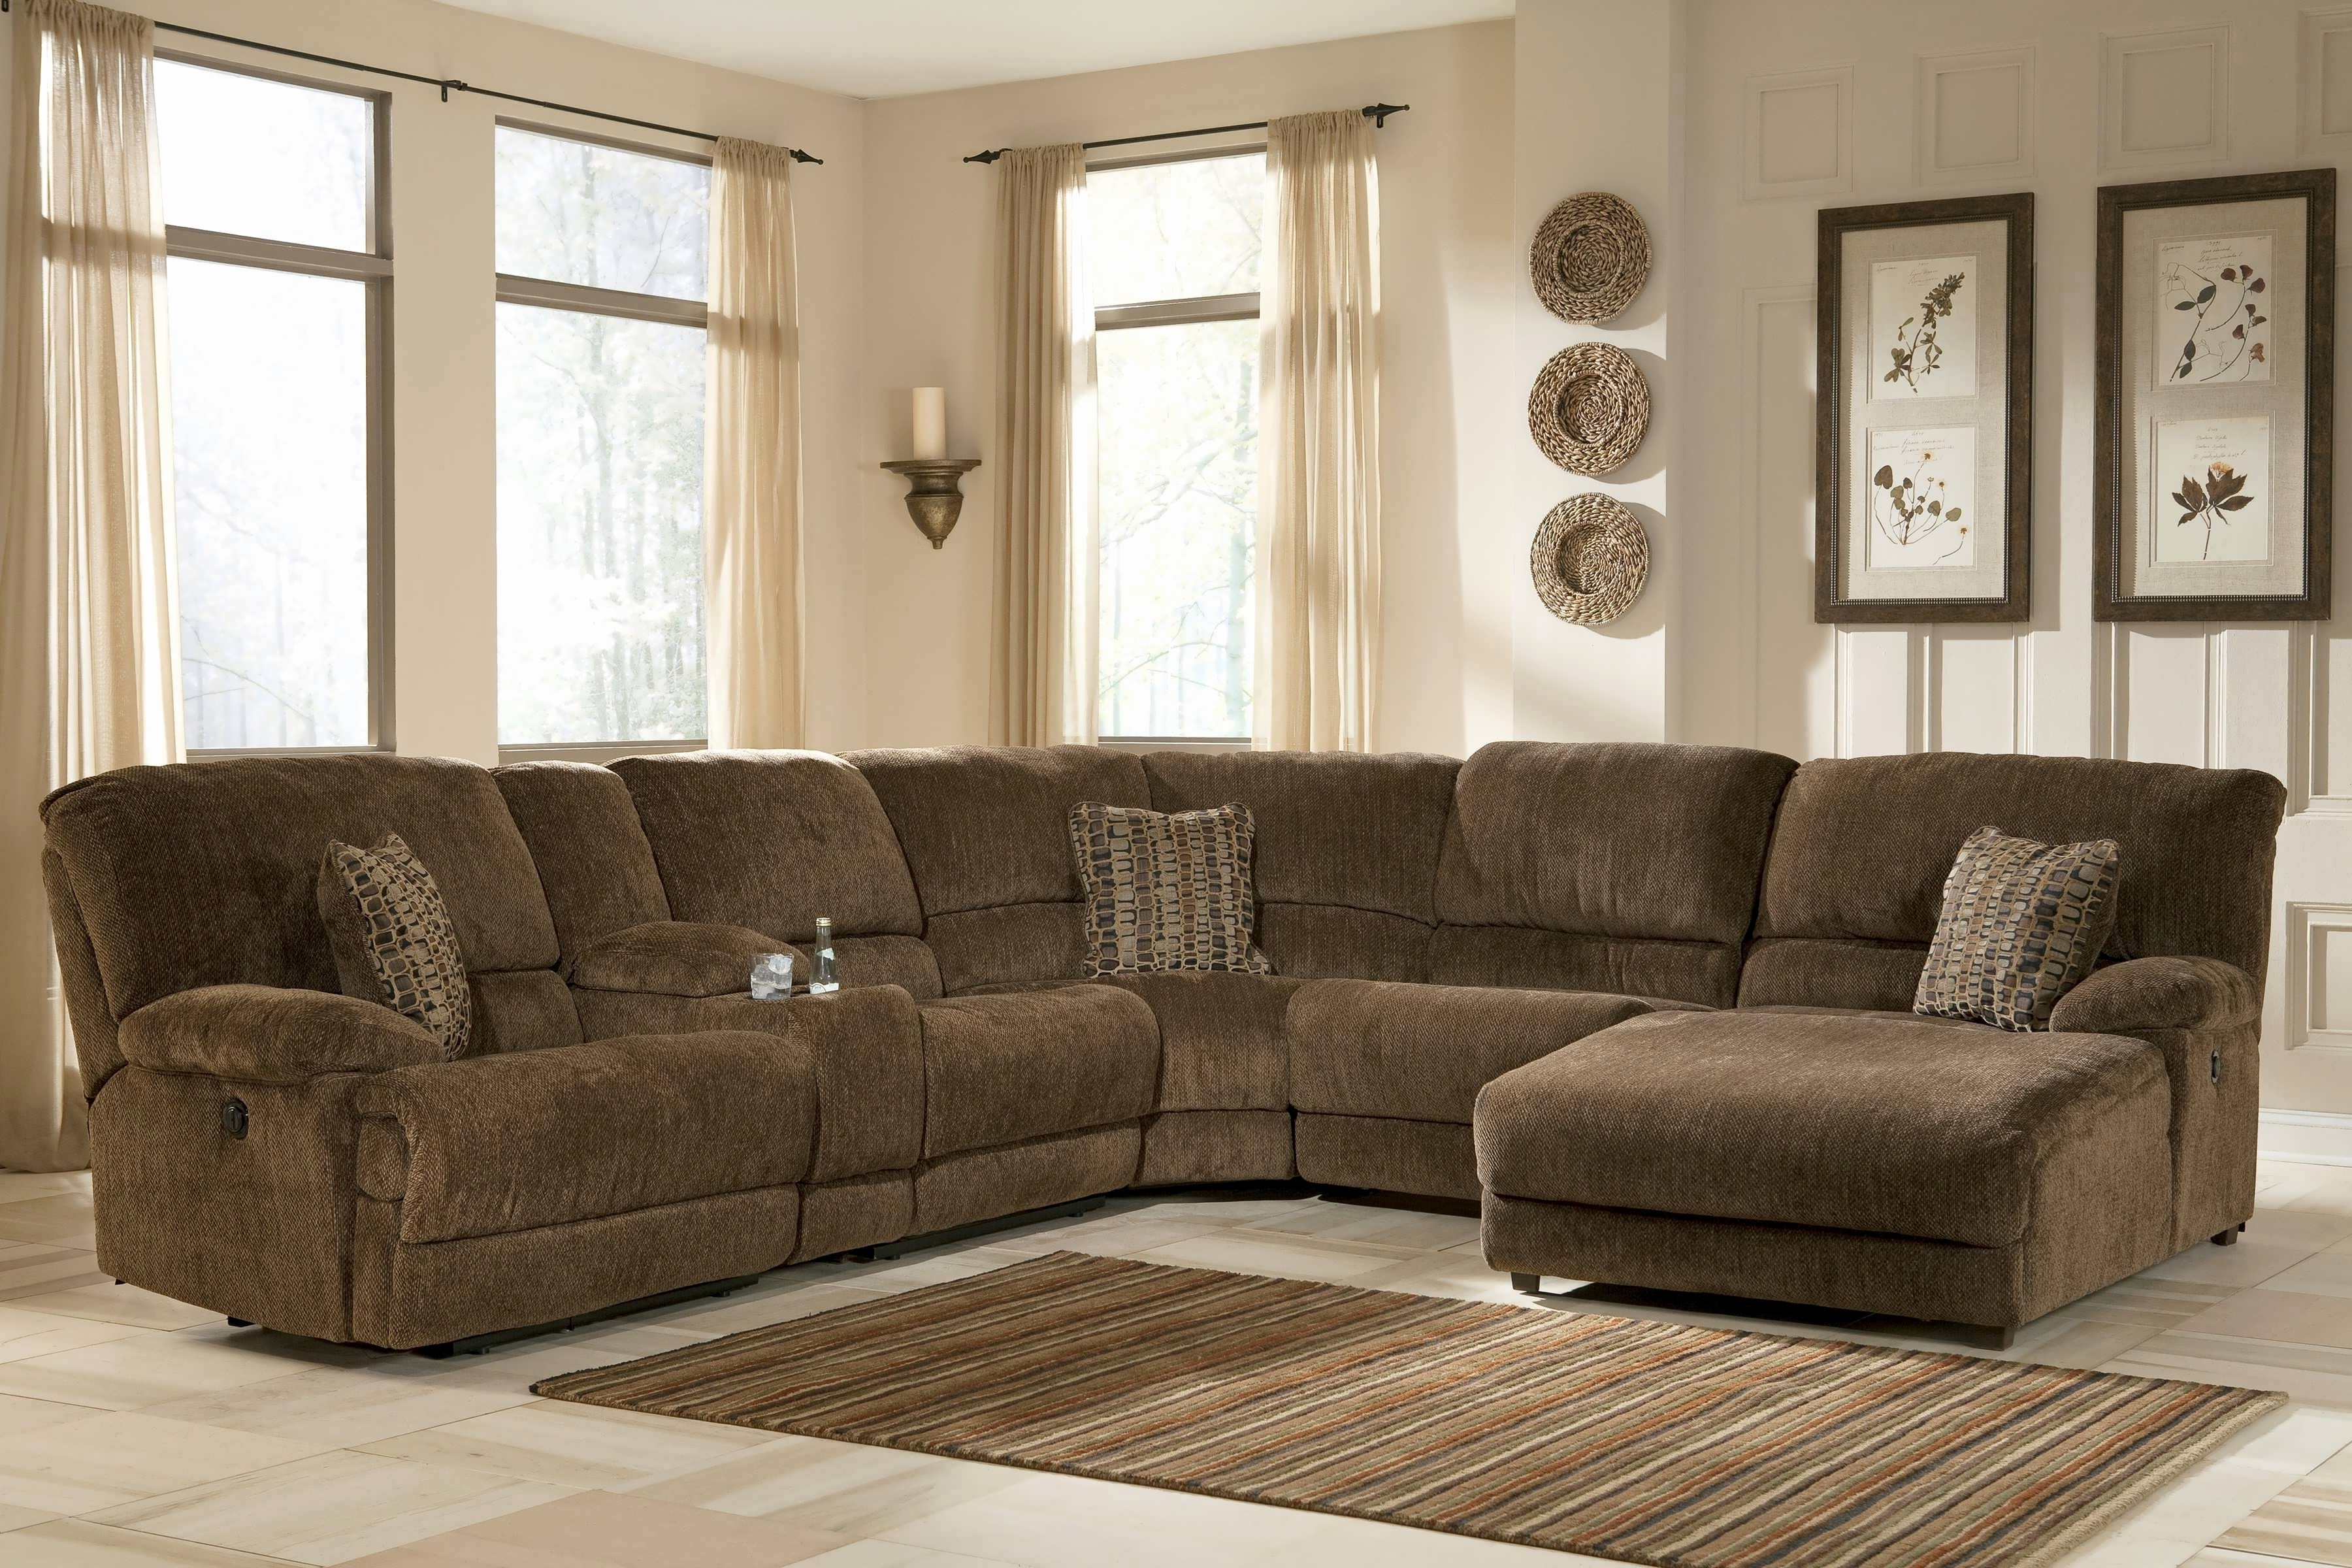 Sectional Sofas With Recliner And Chaise Lounge Throughout Most Recently Released Awesome Best Sectional Sofas Images – Home Design (View 14 of 15)